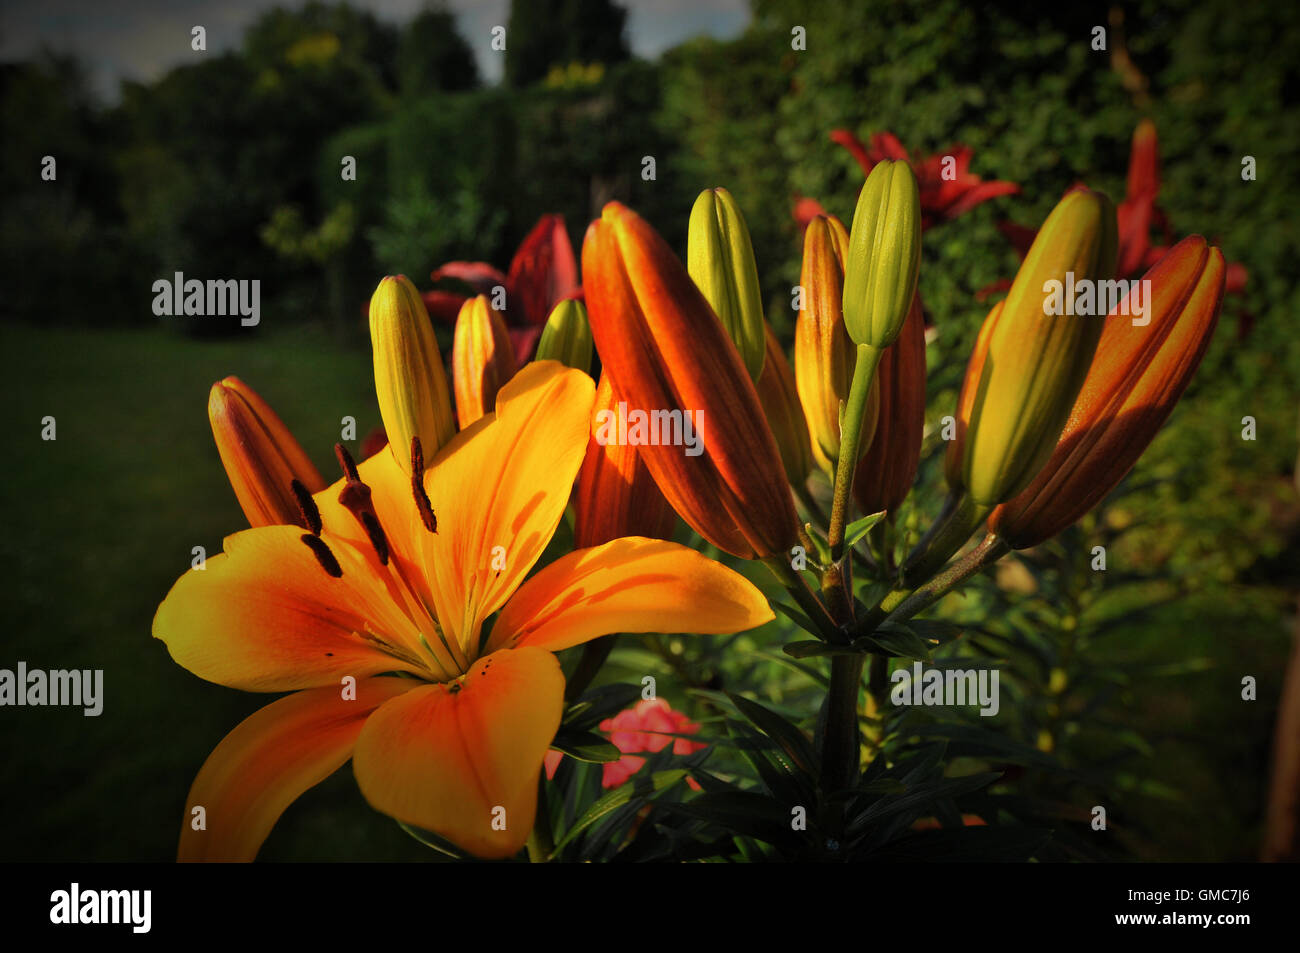 Plants and flowers, caribbean asian Stock Photo